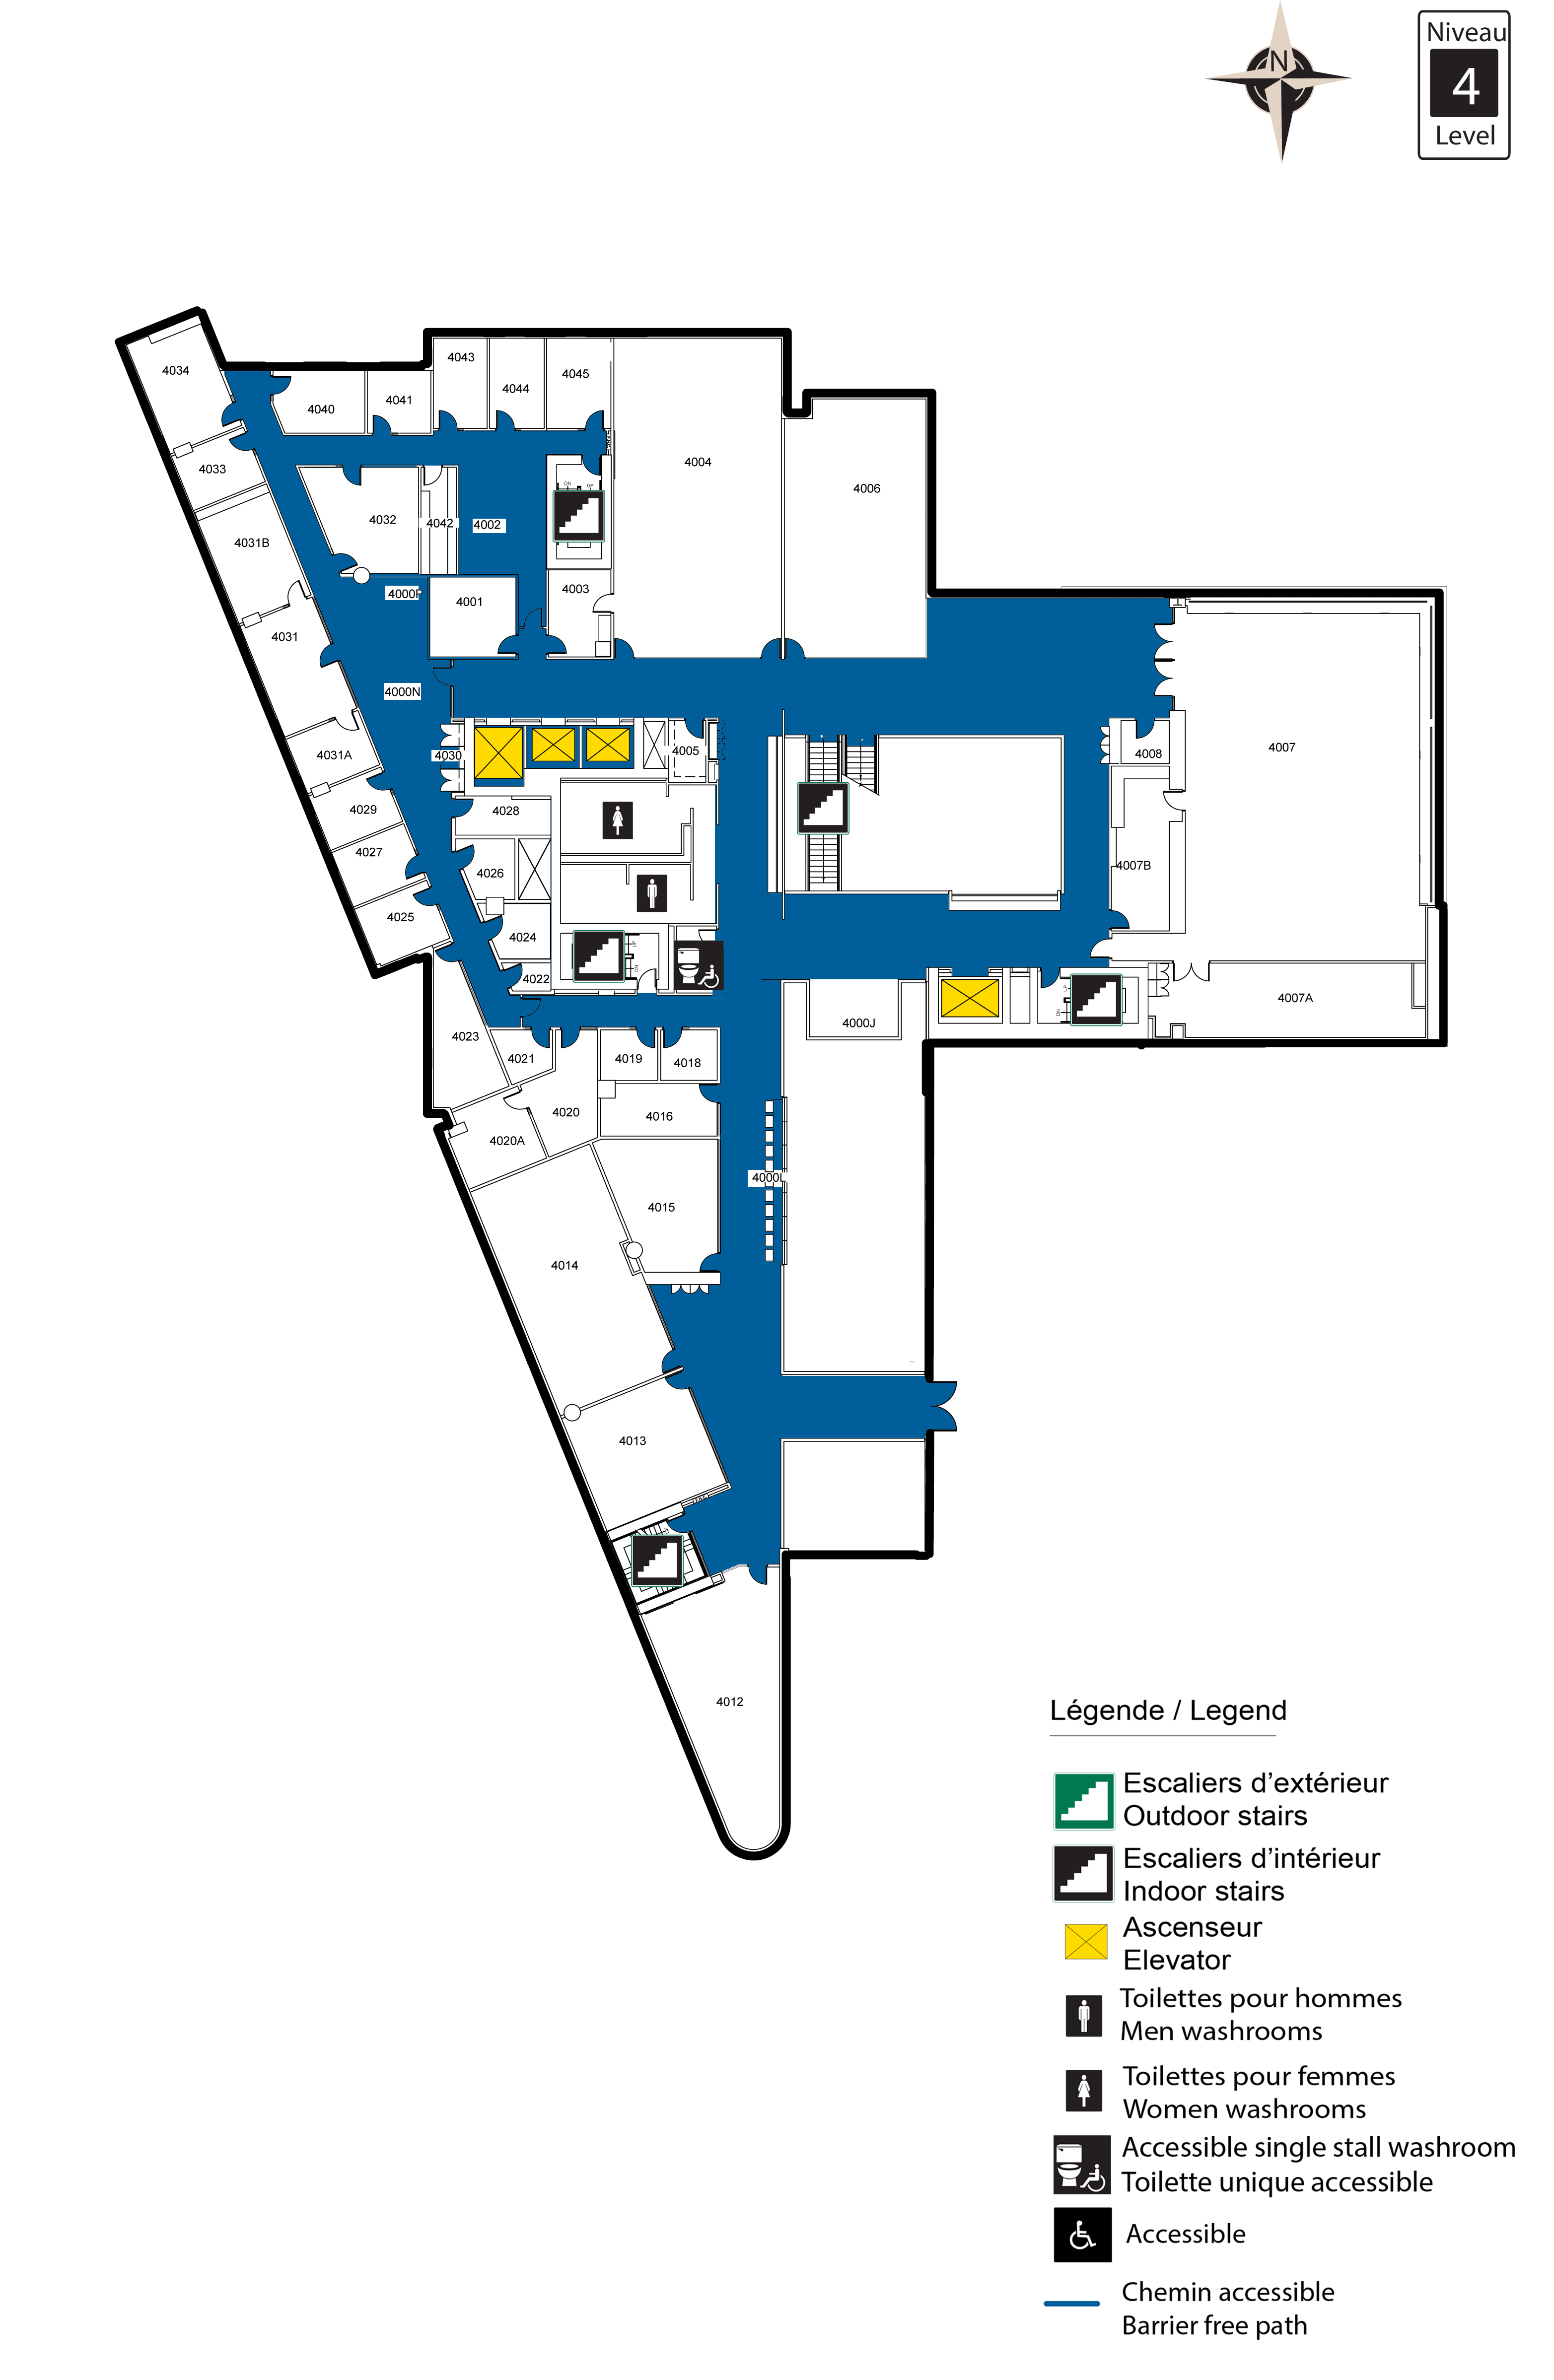 Accessible Map - FSS Level 4